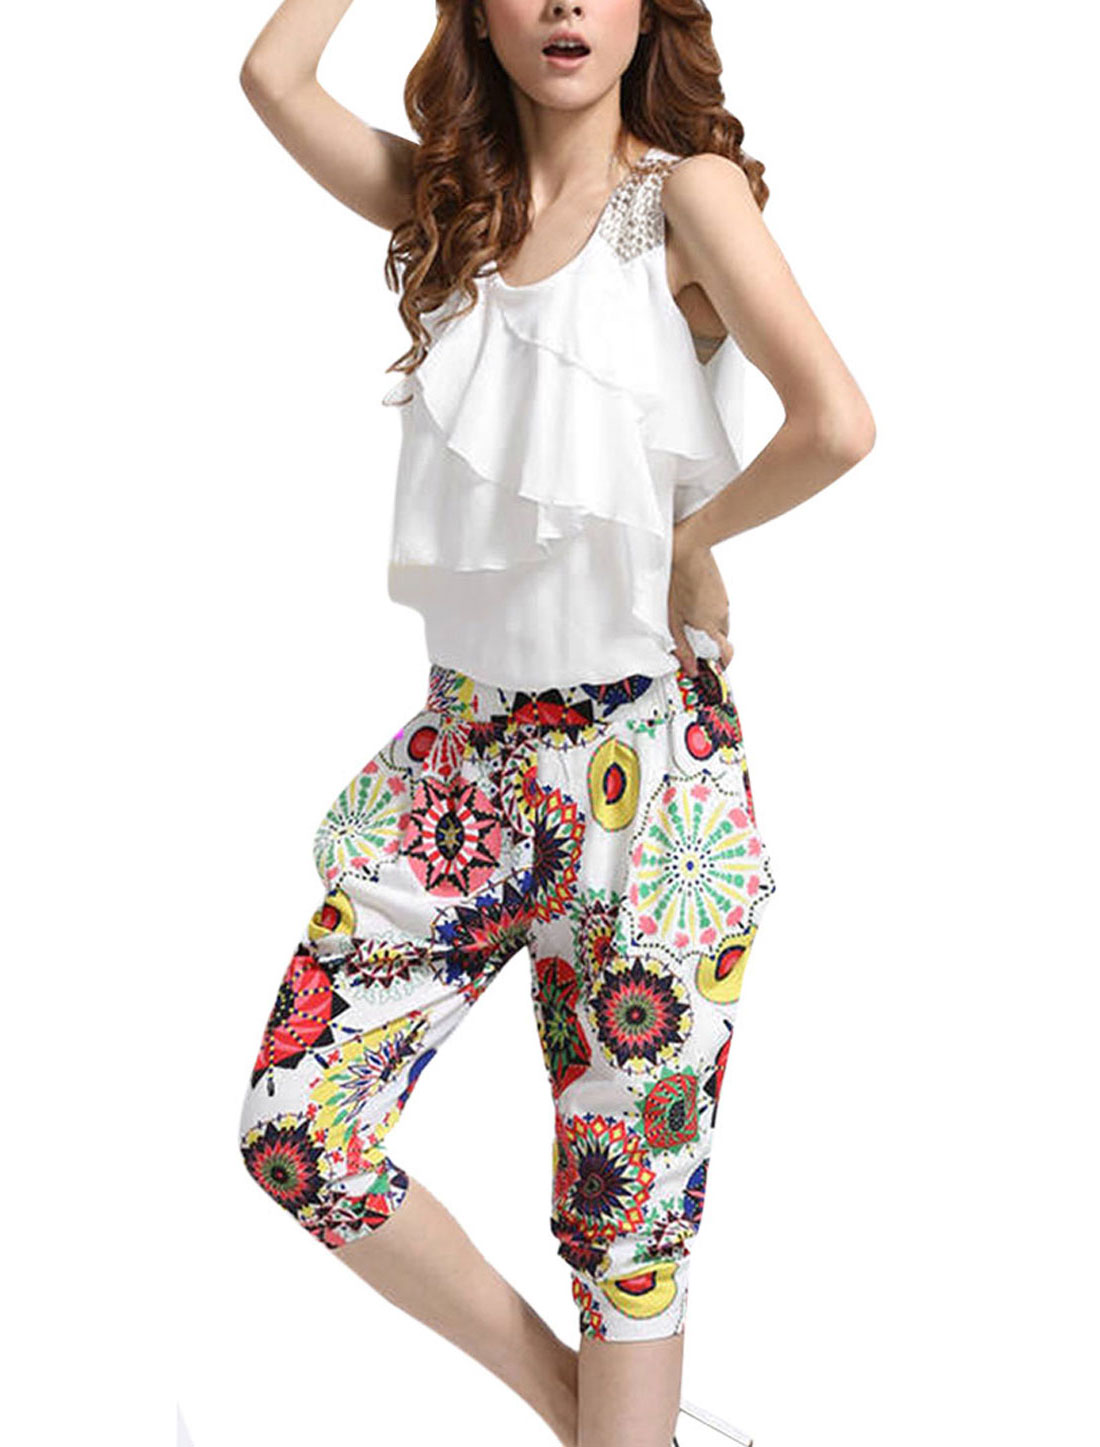 Lady Studded Shoulder Elastic Waist Novelty Prints White Harem Short Jumpsuit S